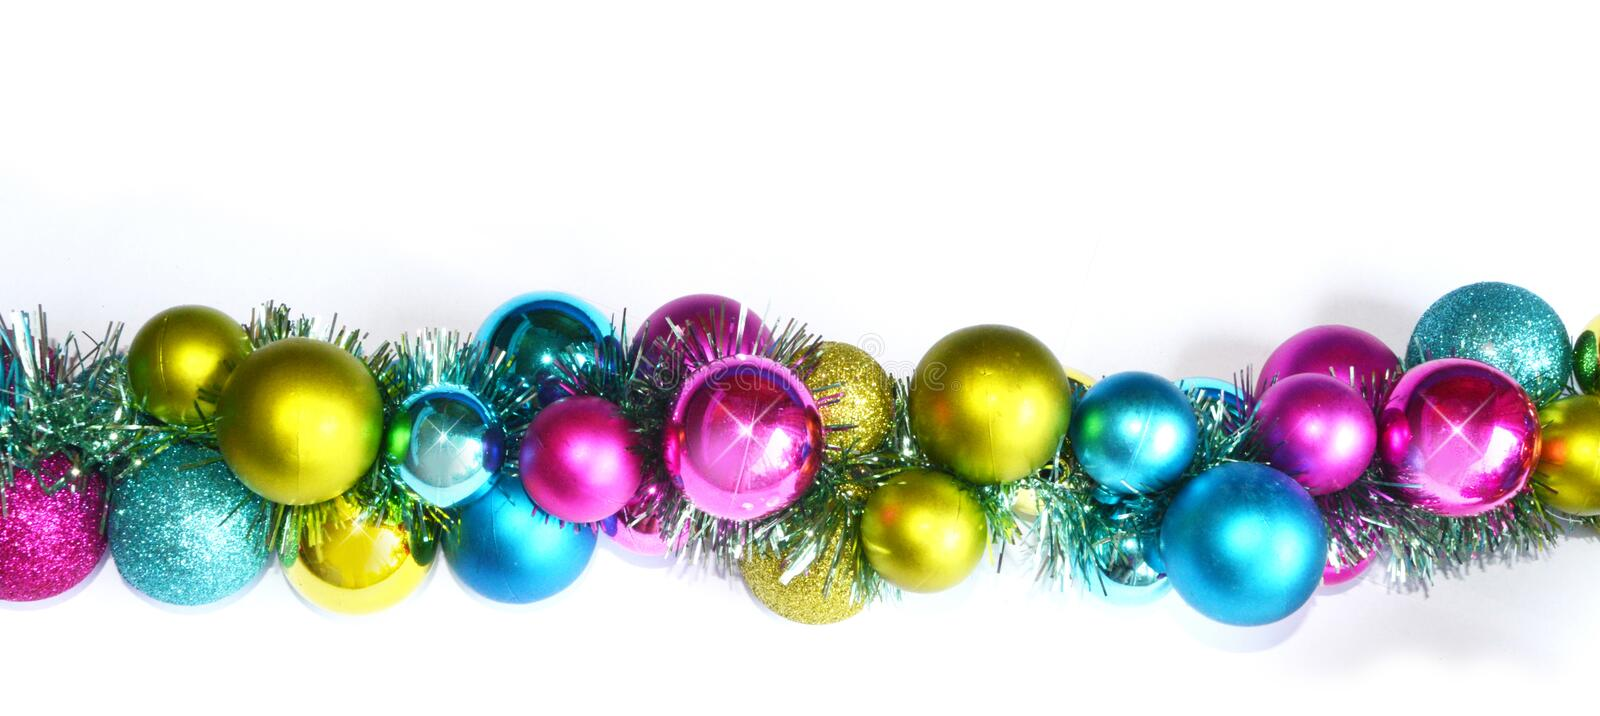 Colorful baubles and tinsel stock image